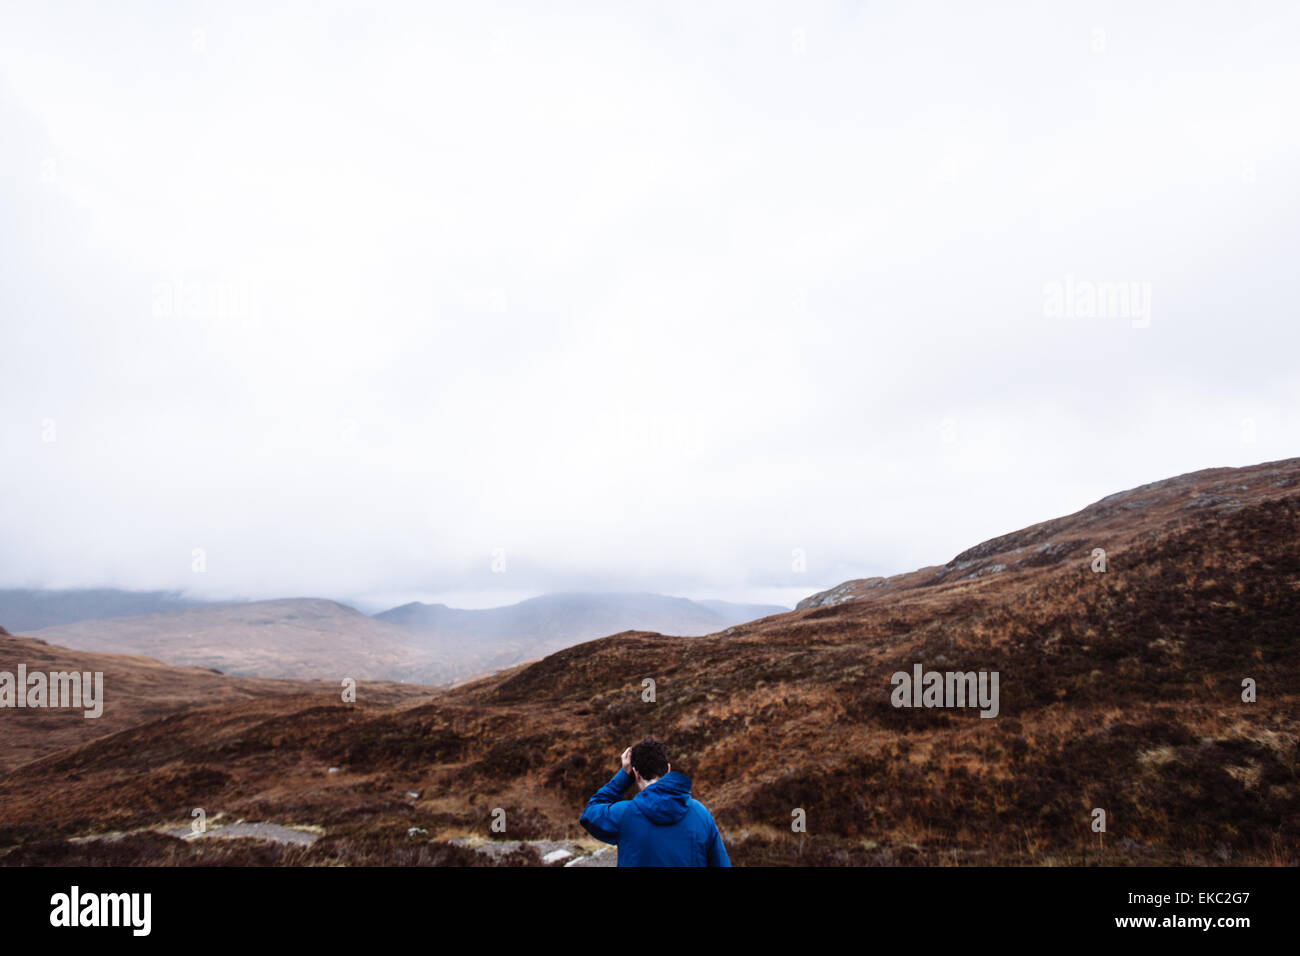 Man hiking, Glencoe, Scottish Highlands, Scotland - Stock Image